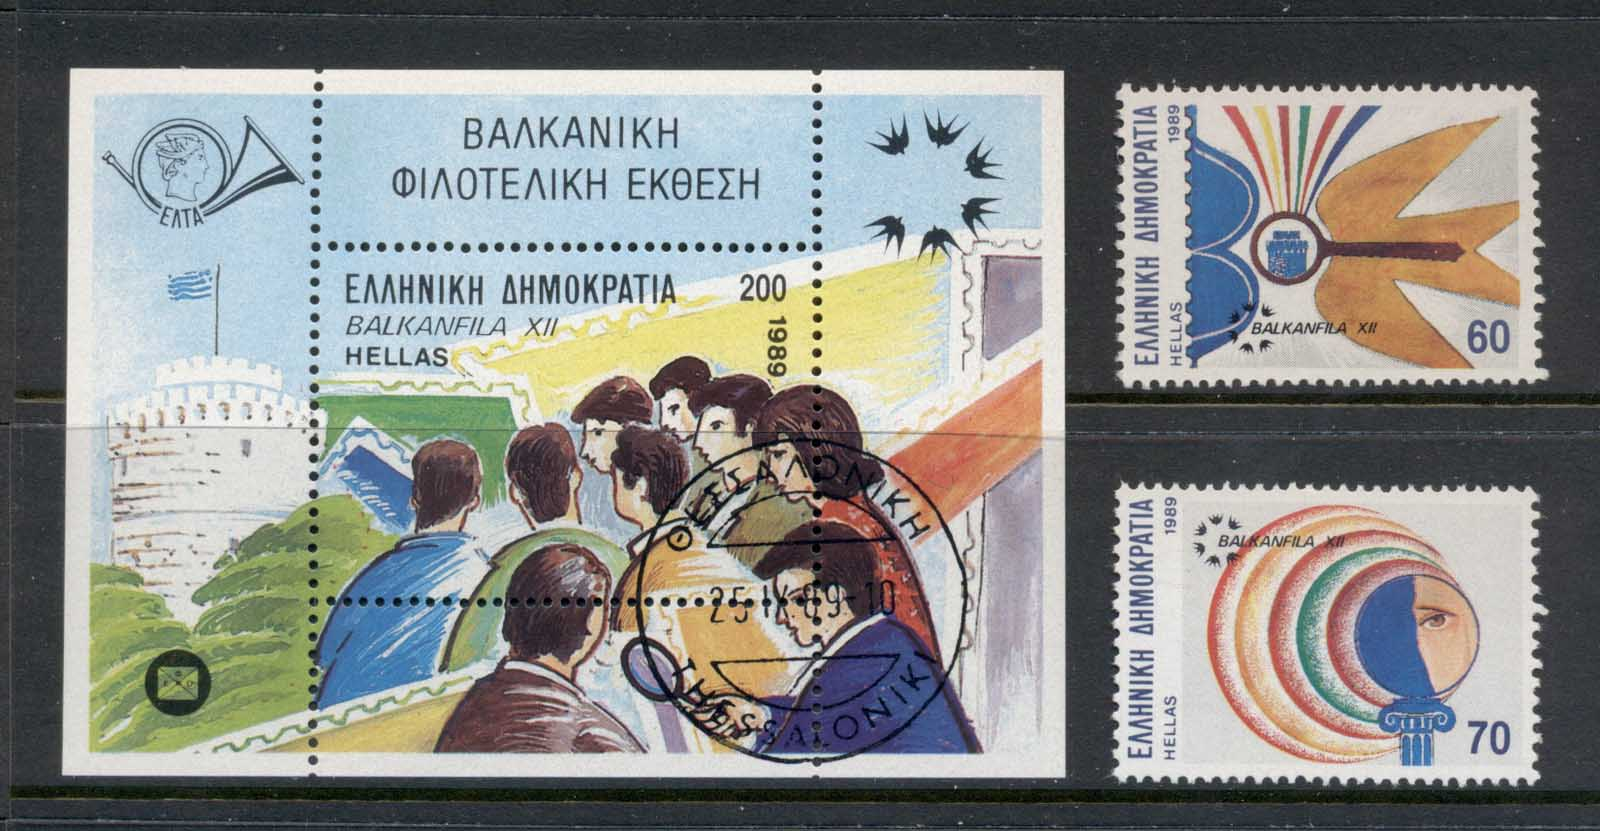 Greece 1989 Balkanfilia Stamp Ex + MS CTO/MUH